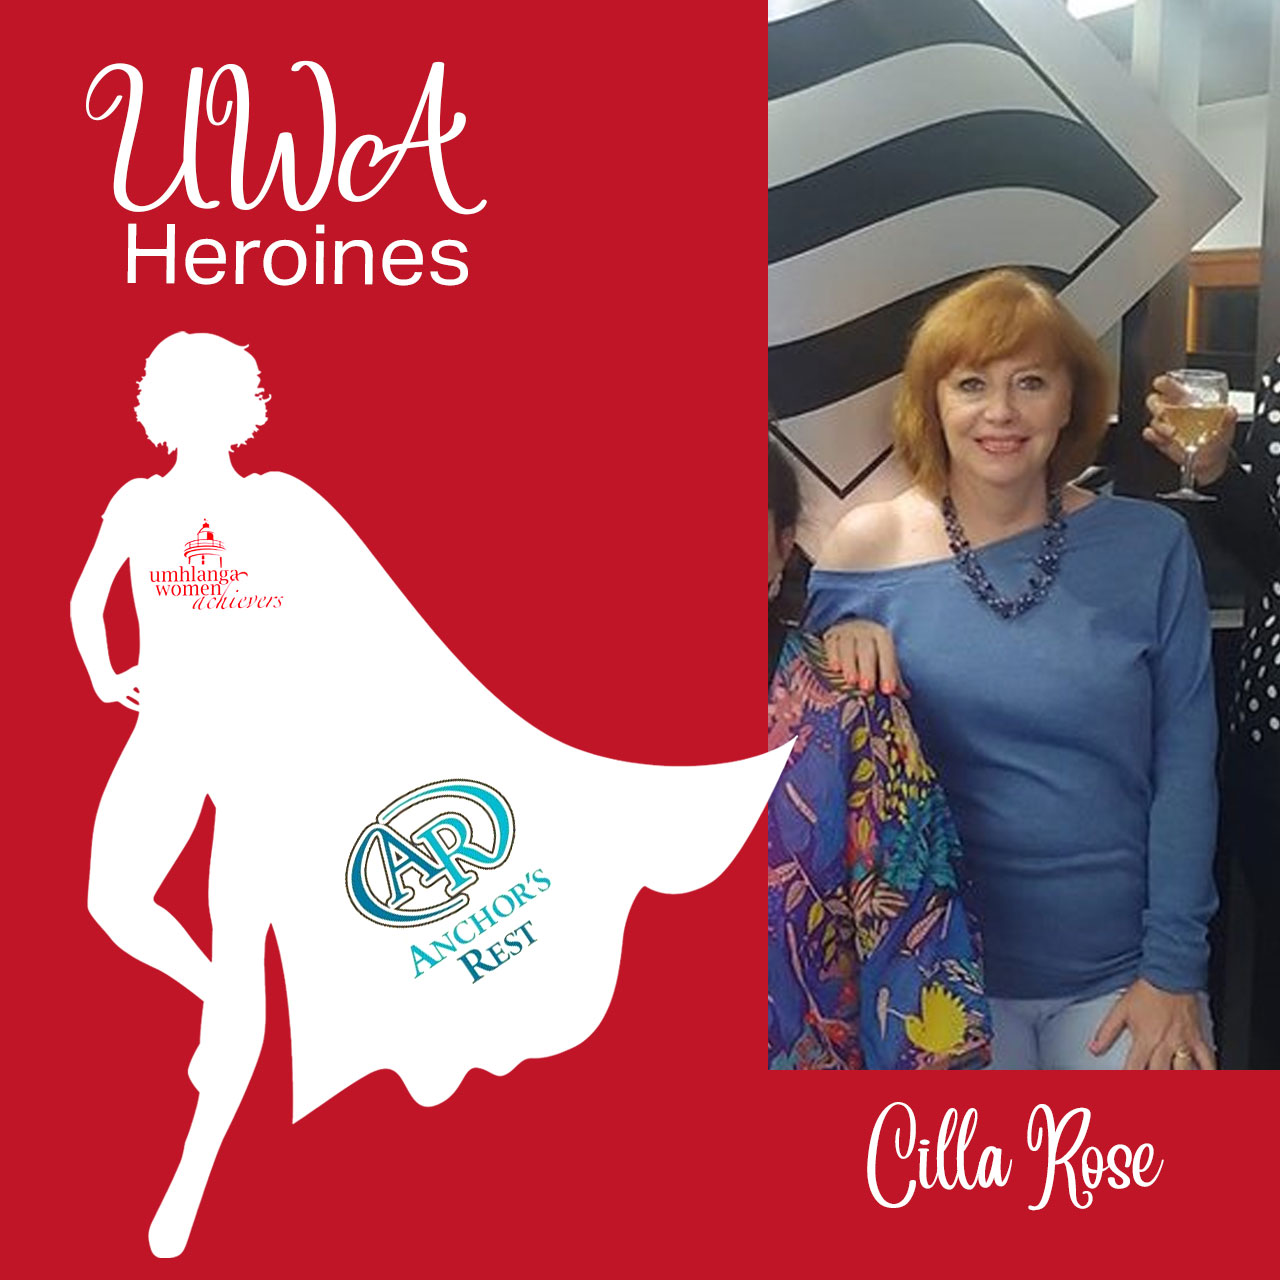 We want to shout out to an exceptional UWA Heroine, well done Cilla Rose